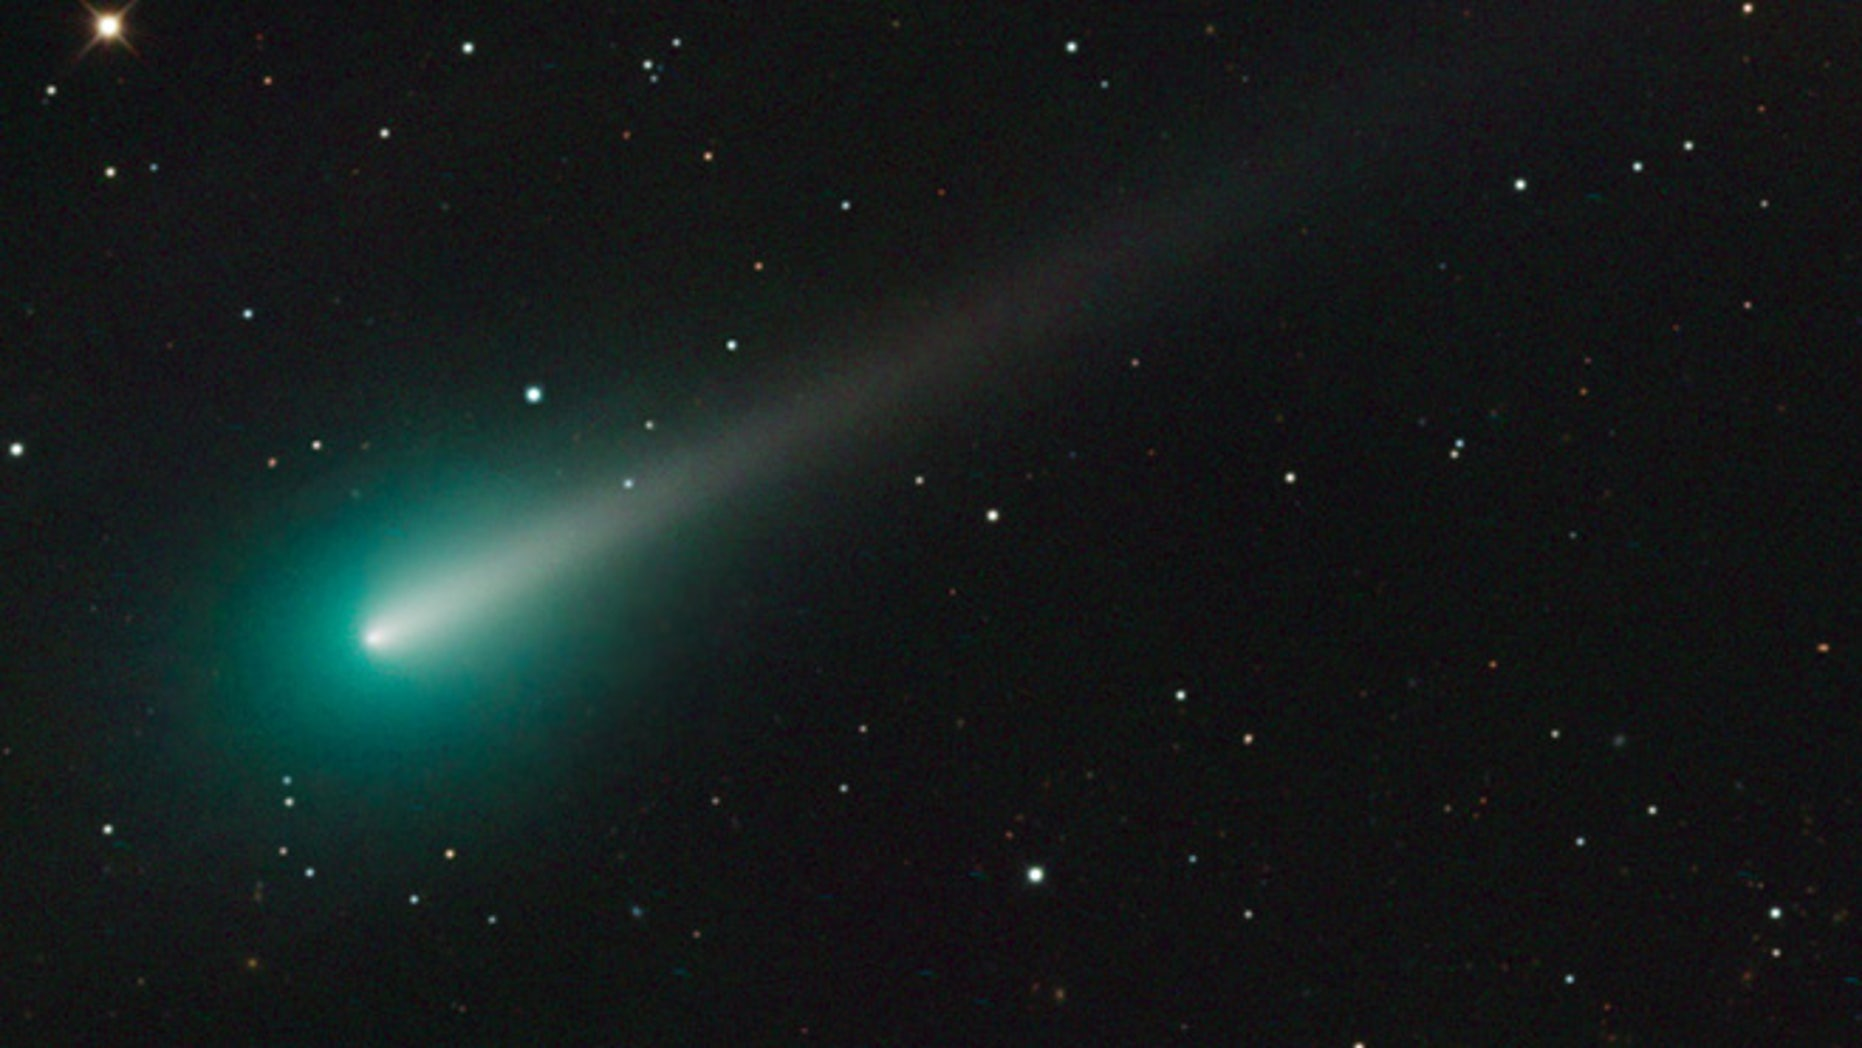 Oct.. 8, 2013: Adam Block took this image of comet ISON using a SBIG STX16803 CCD Camera with a 32-inch Schulman Telescope Schulman Telescope atop Mount Lemmon from the University of Arizona's SkyCenter in the morning.